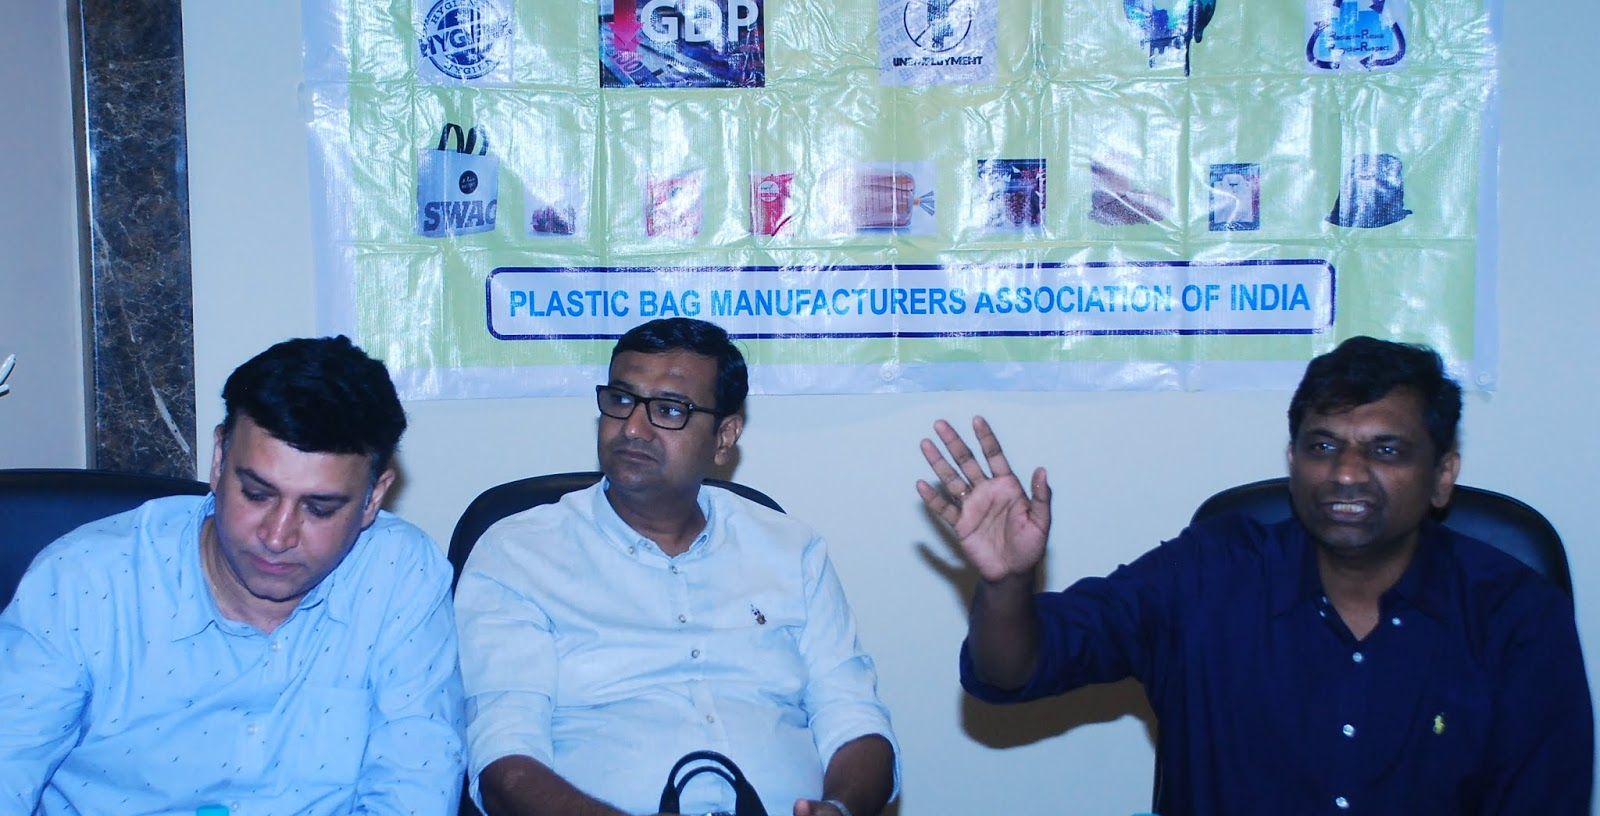 Ban On Plastic Carry Bag Discriminatory Erroneous Pbmai Demands Waiver For 20 Gram Bags Foreign Hands At Work To